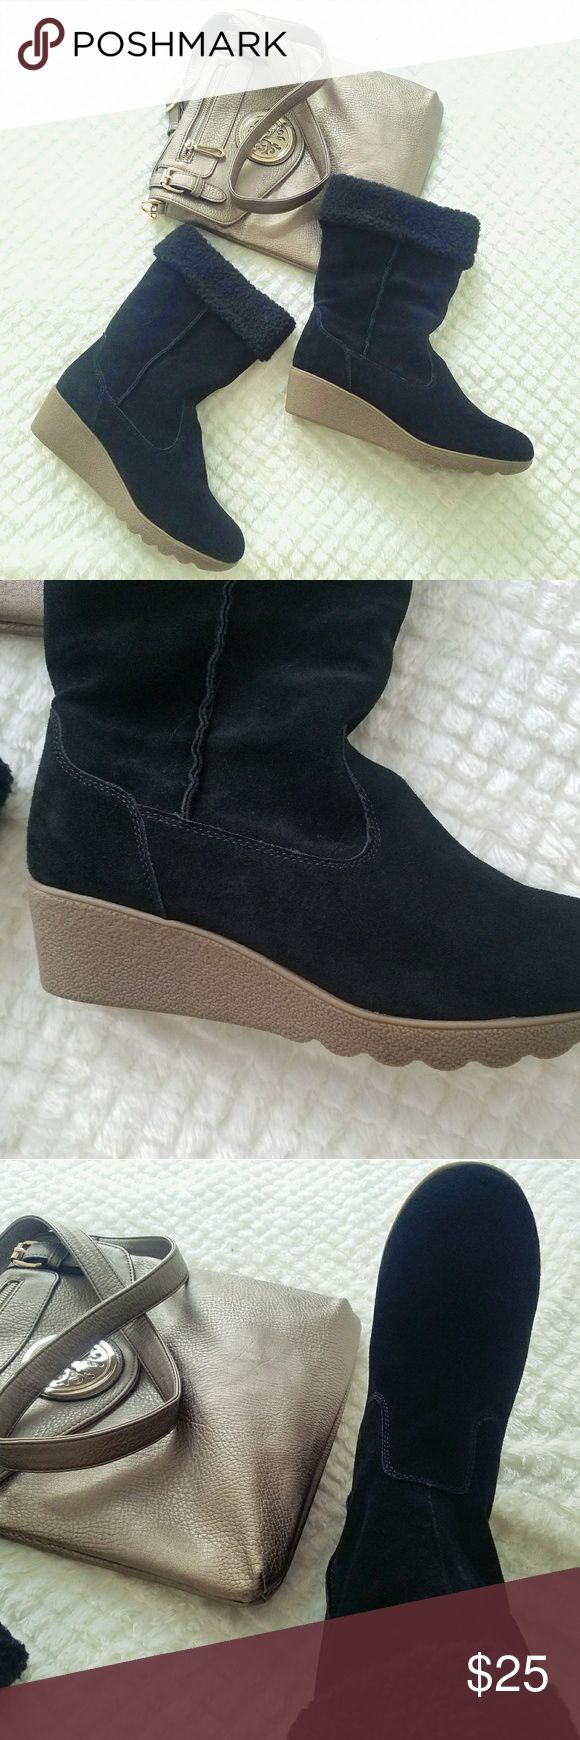 Black Suede Wedge Boots Size 10B NWOT Lands' End brand new Booties size 10B, great condition and very warm! Perfect and comfy for a cold day. Suede and Sterling with comfy and warm lining and a fashionable wedge. Lands' End Shoes Ankle Boots & Booties